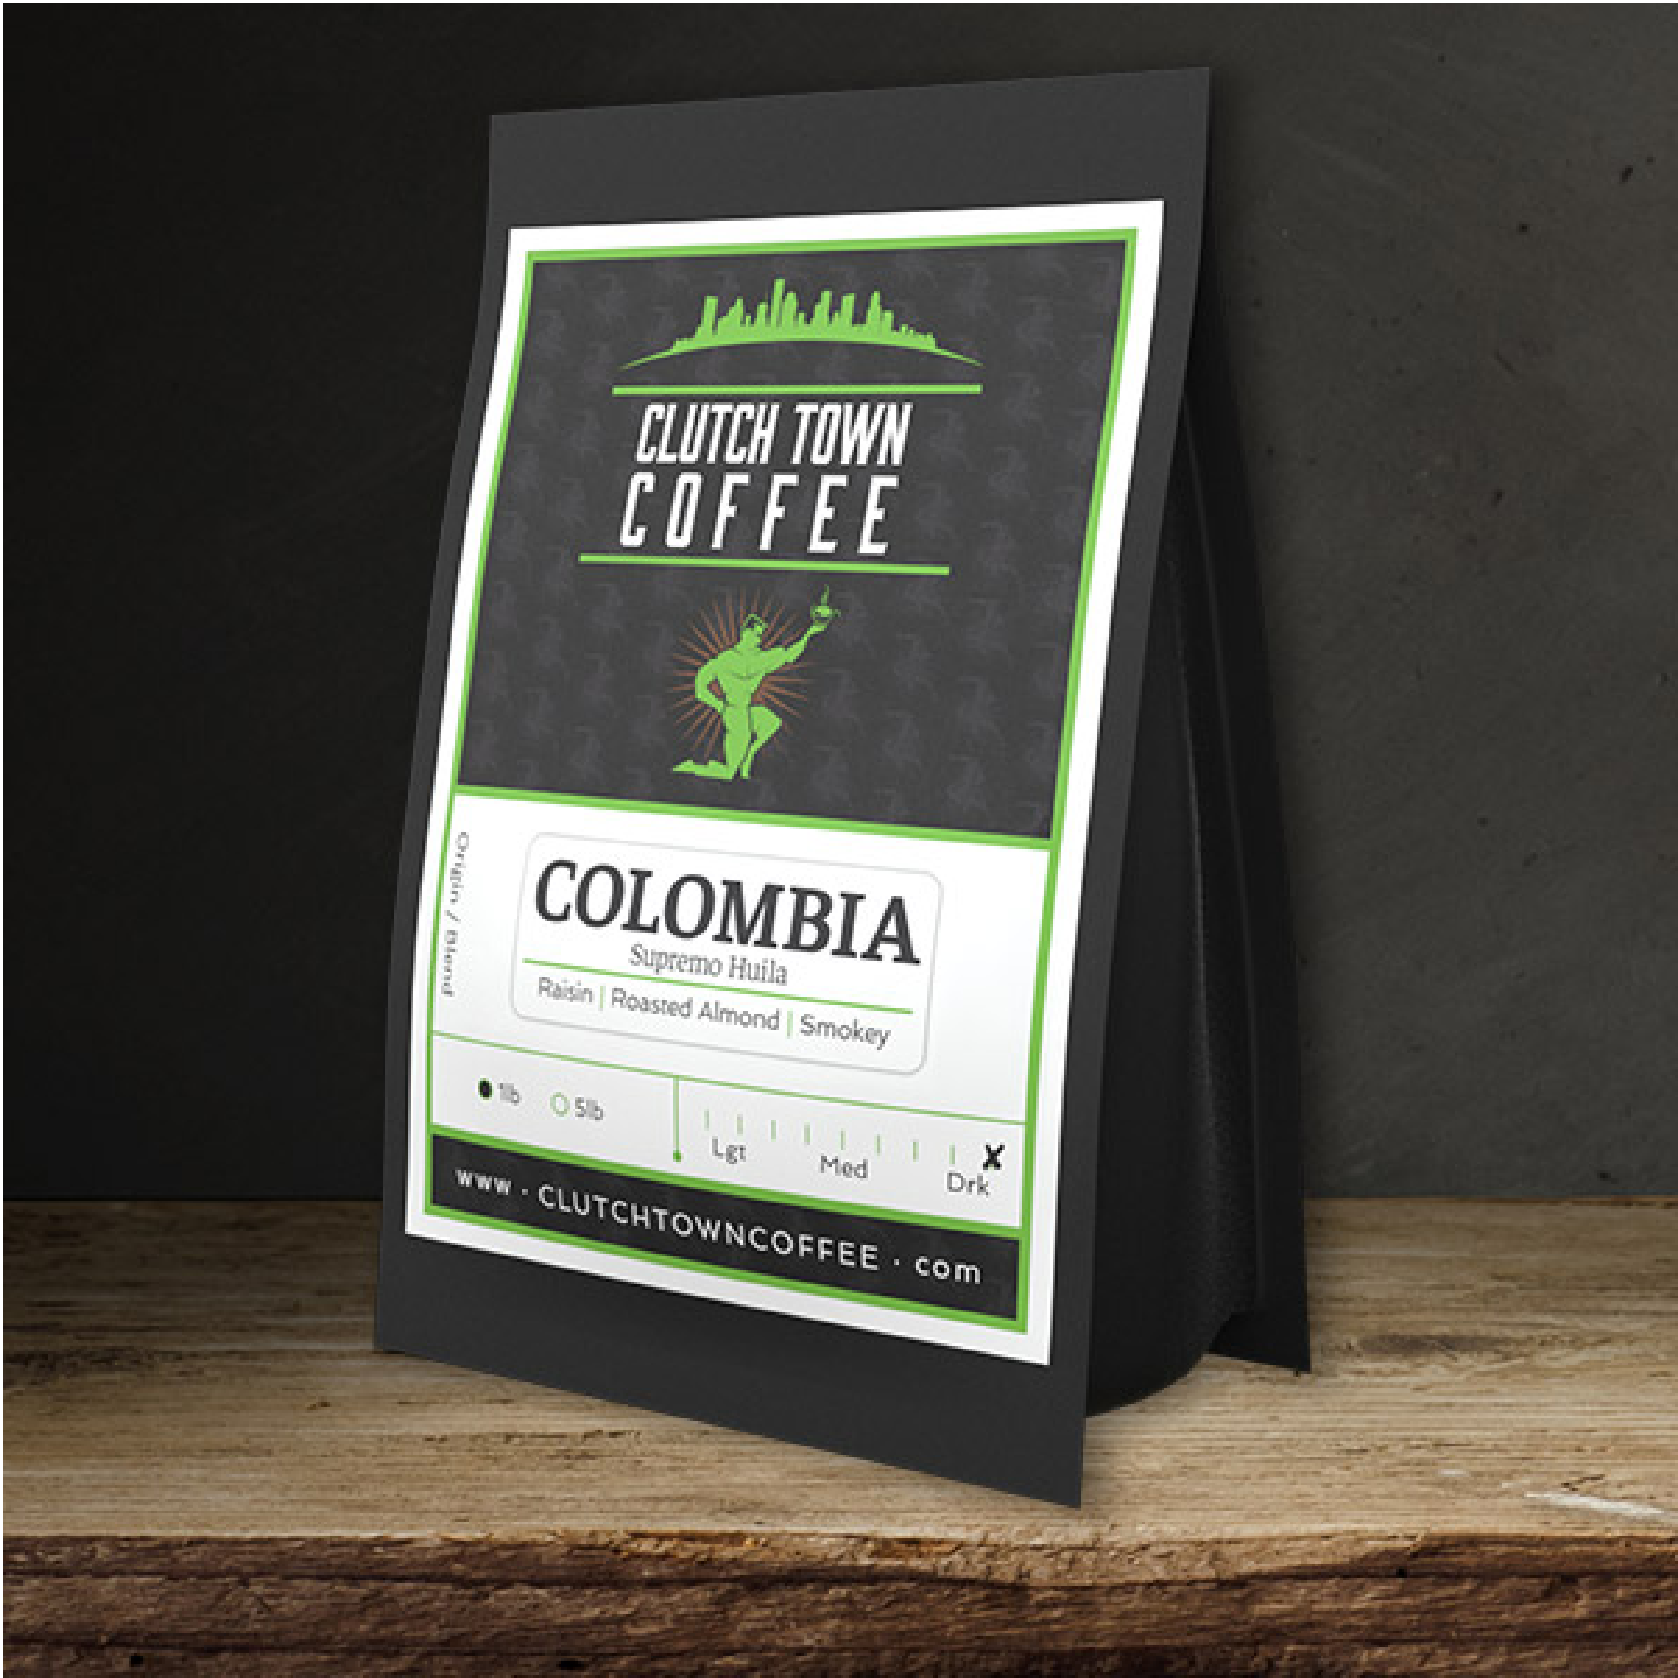 Colombia from Clutch Town Coffee